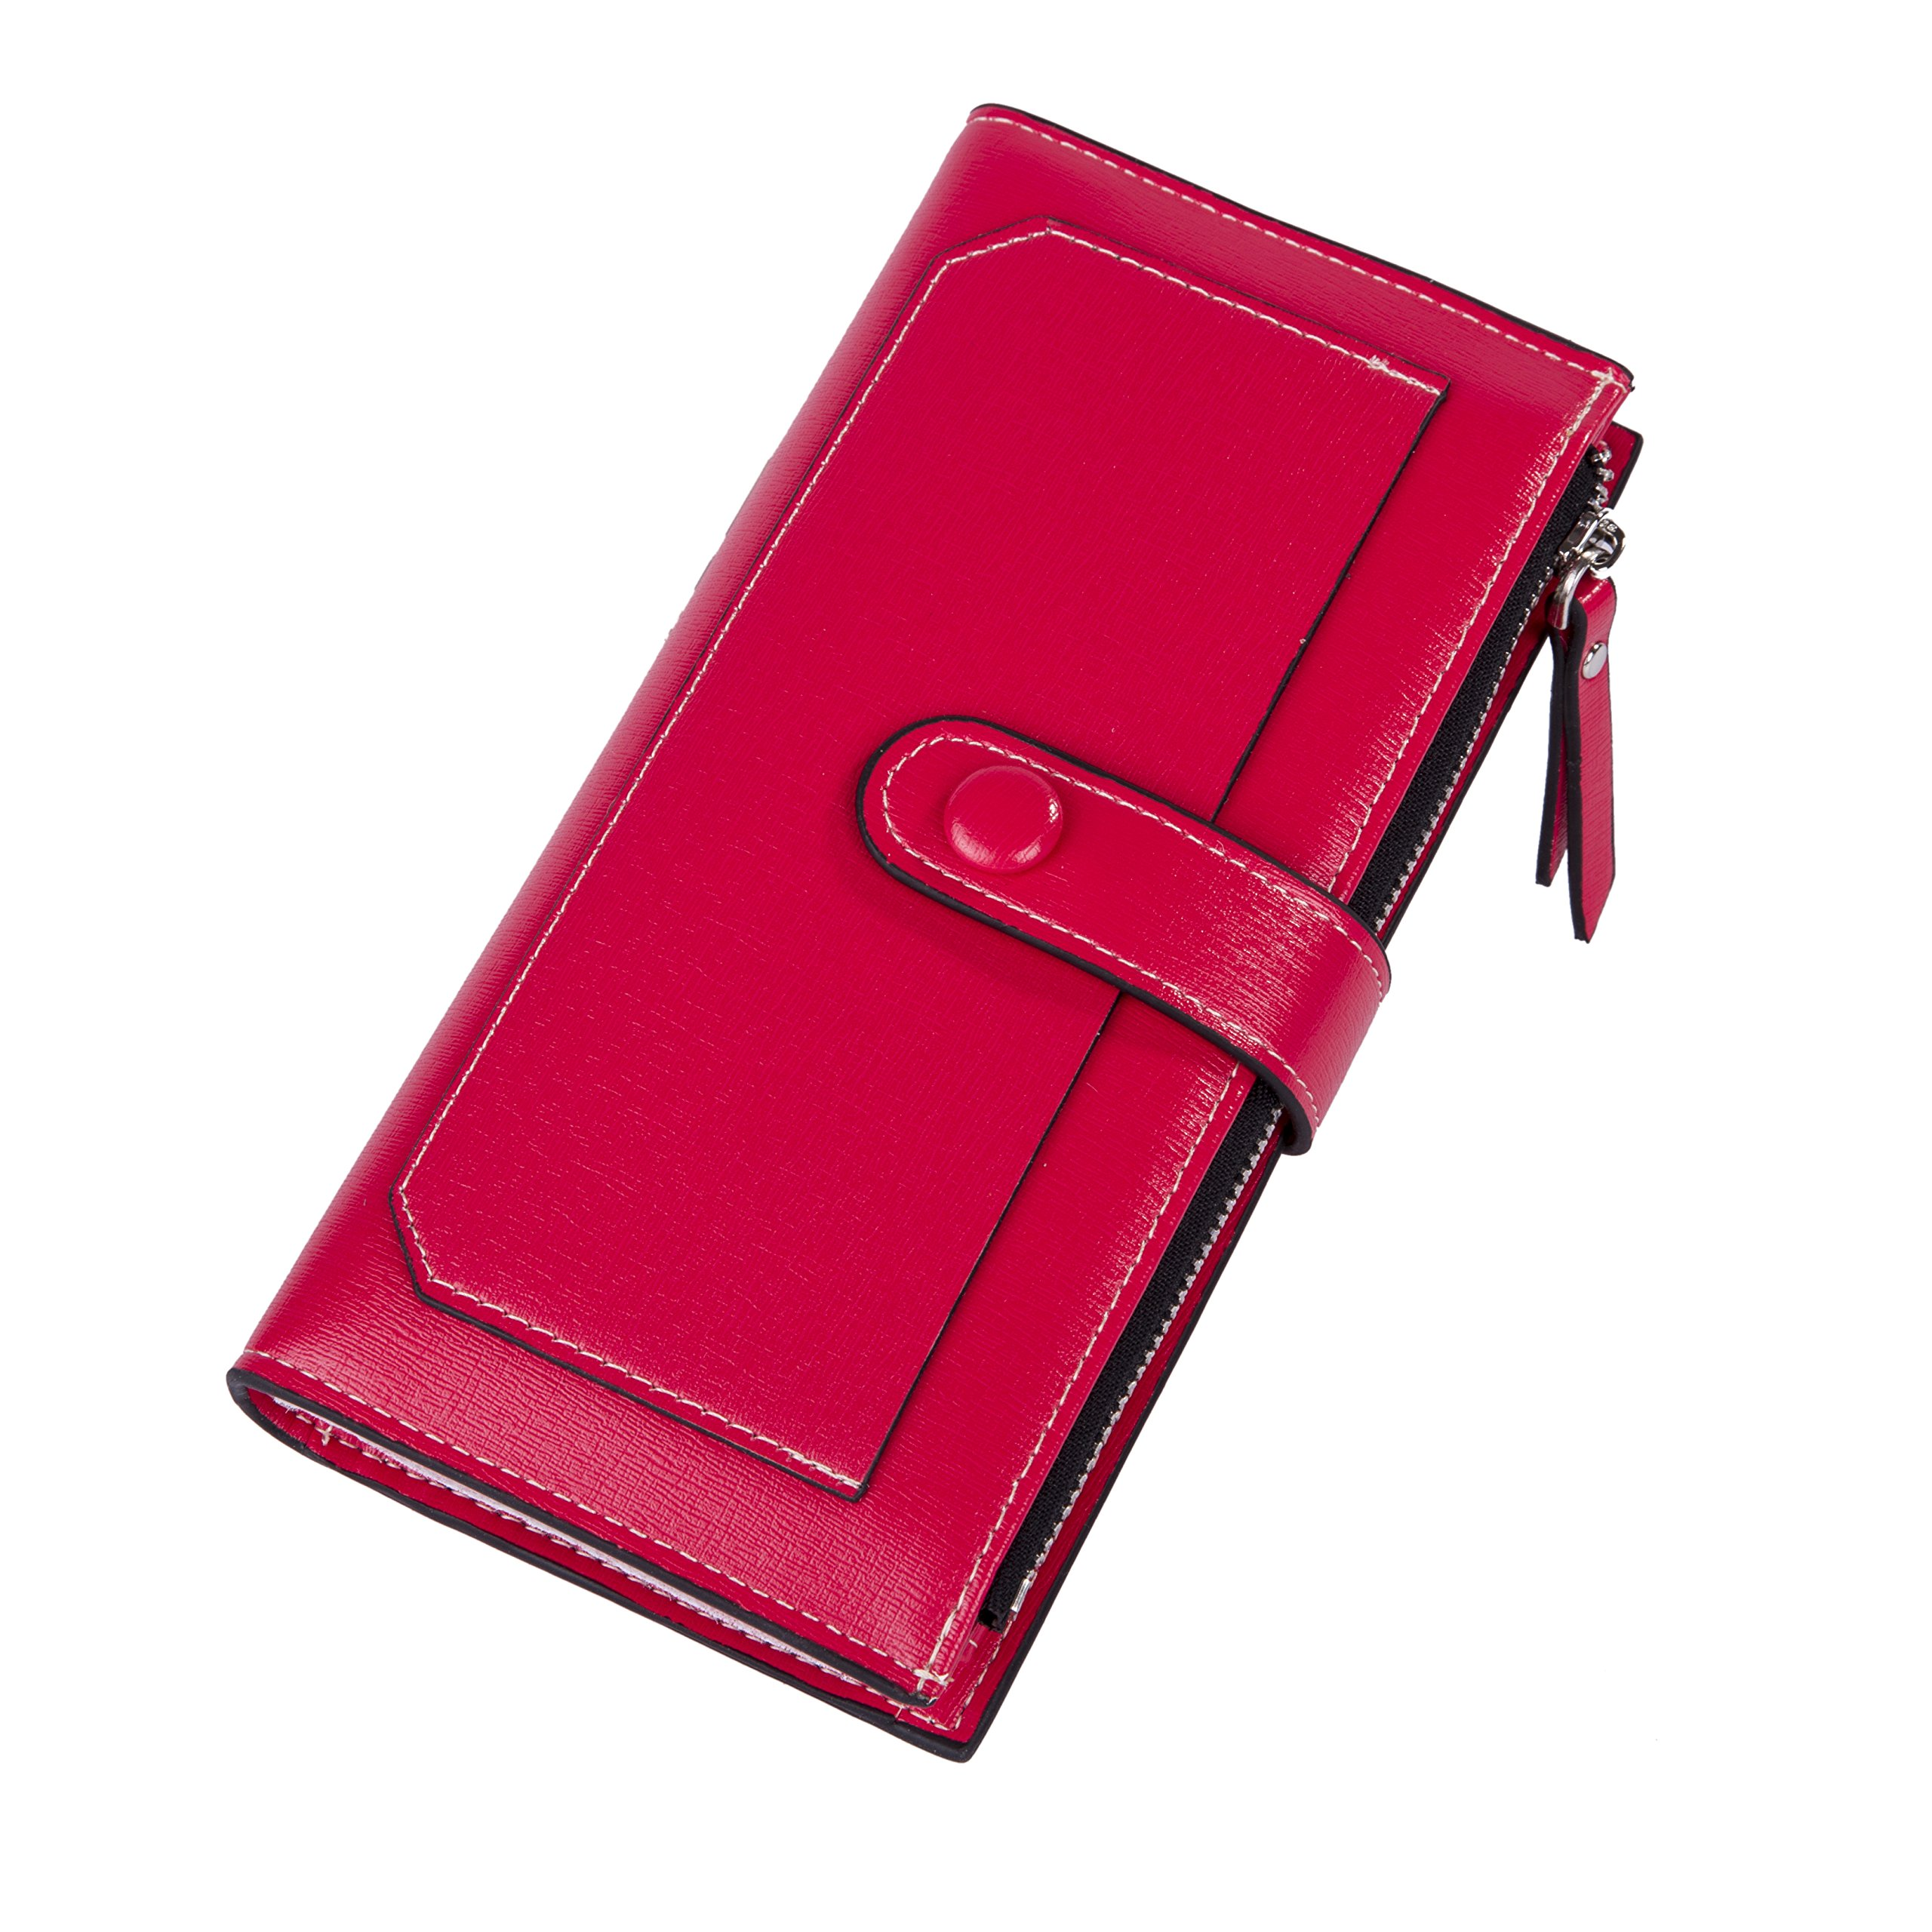 Baellerry Women Soft Leather Long Wallet Large Capacity Cluth Ladies Purse Card Holder (red)